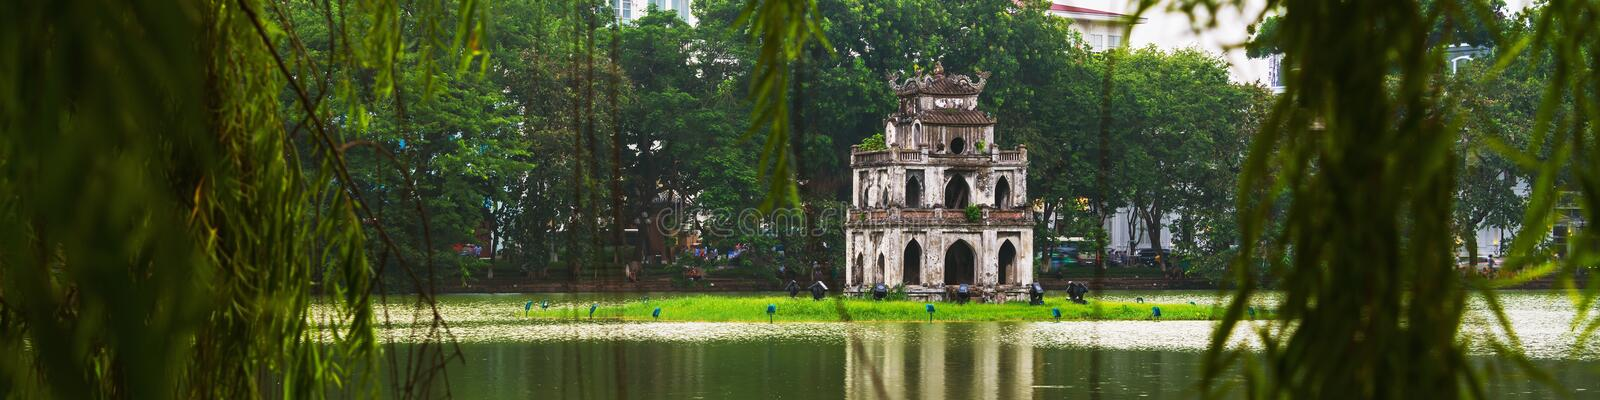 Hanoi, Vietnam. Turtle Tower at Hoan Kiem Lake. In Hanoi, Vietnam. Tree at the foreground, cloudy moody weather stock images